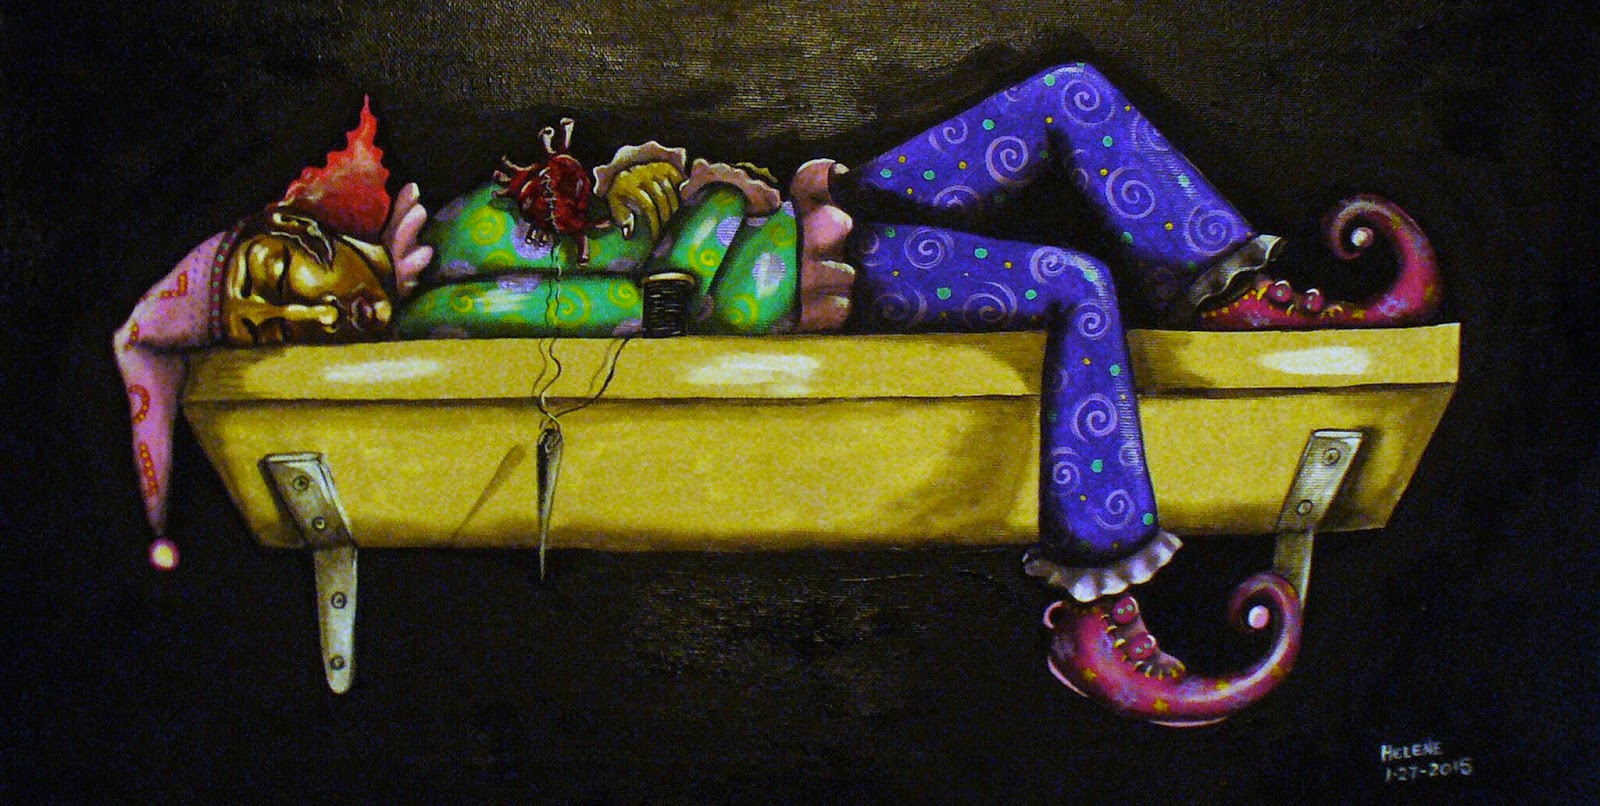 Jester or fool garbed sleeping or dead character reposed in yellow bathtub with heart outside of chest on black background